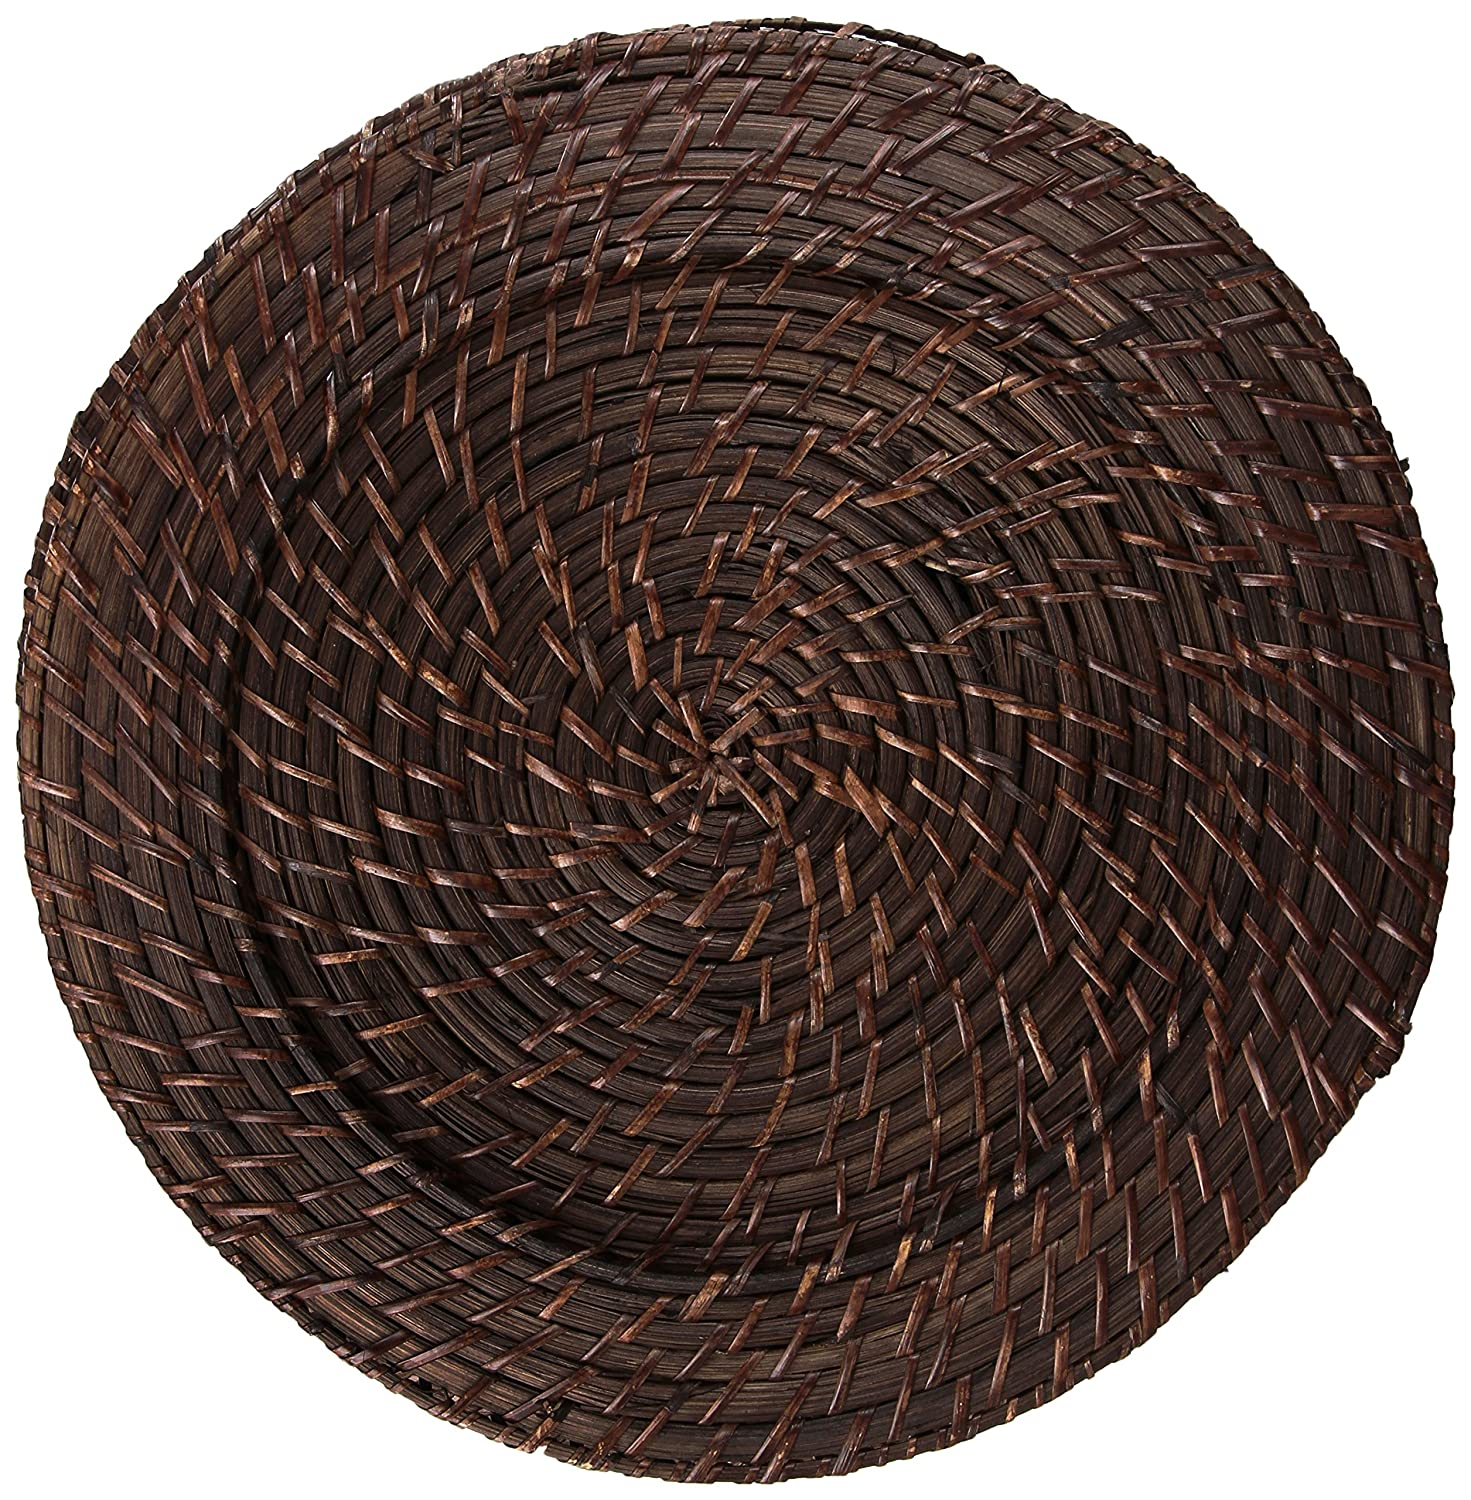 Rattan Dark Brown Charger Set of 4